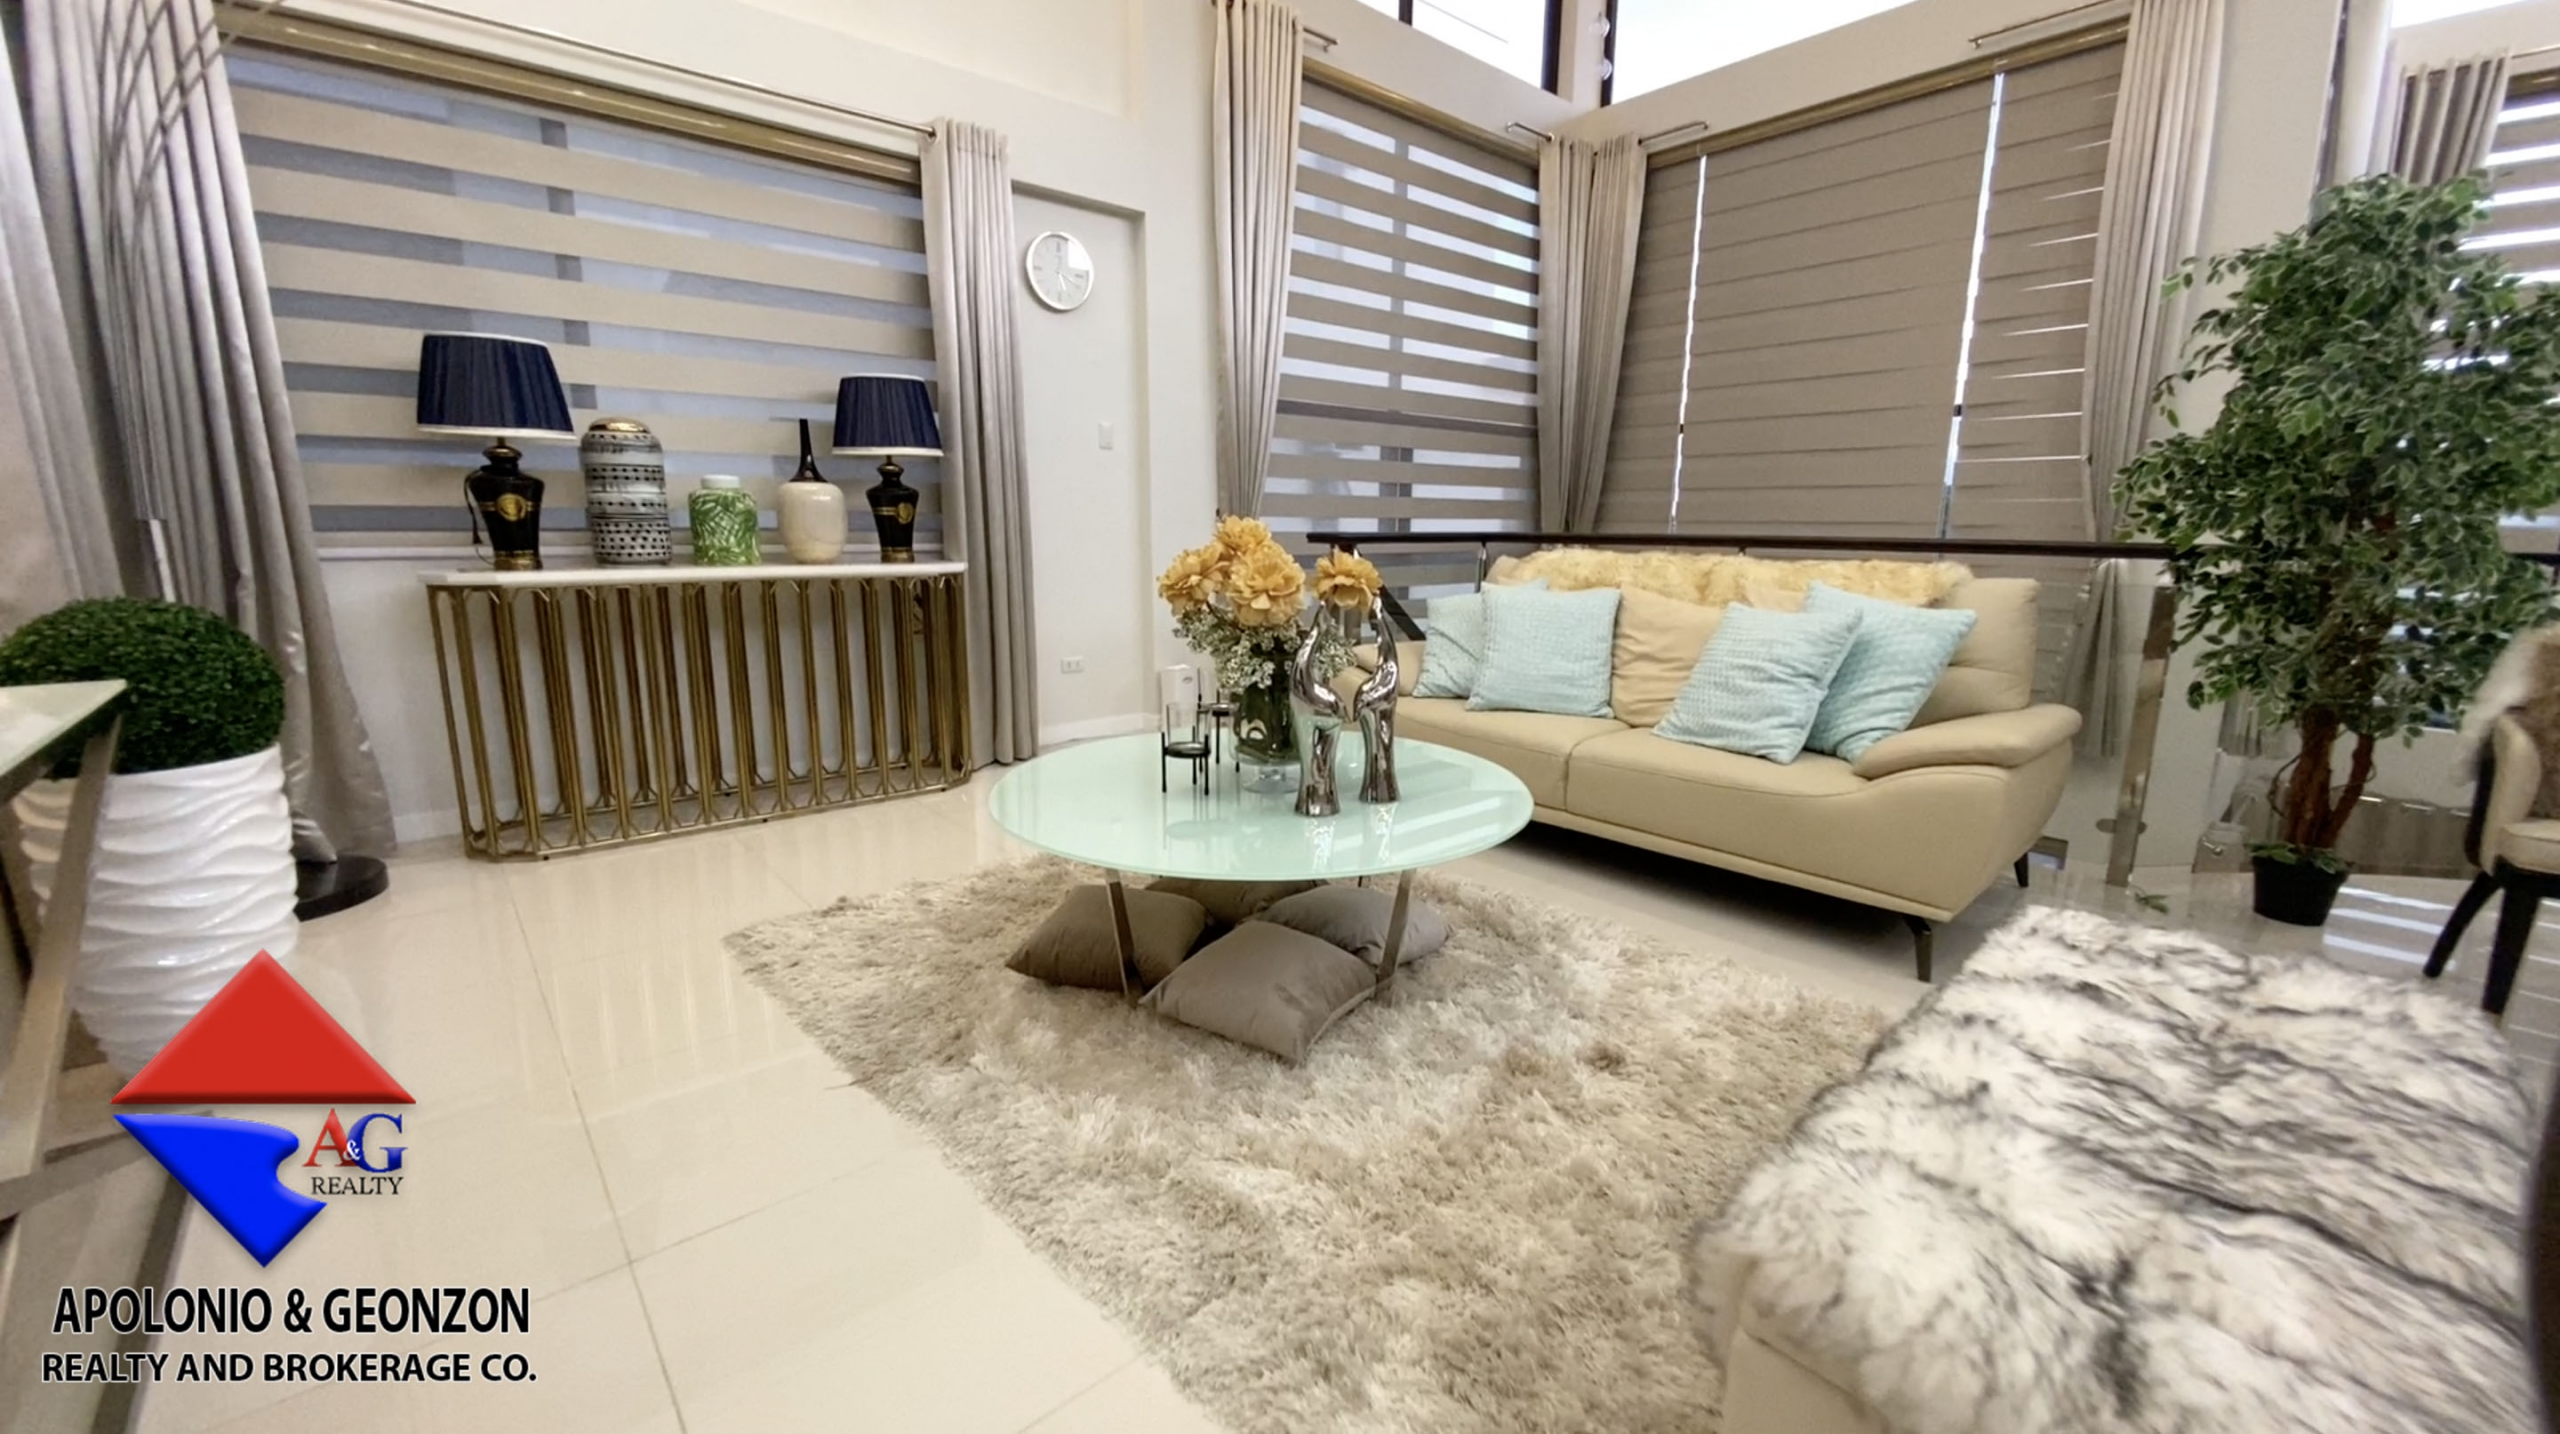 monteritz-davao-house-for-sale-beautiful-living